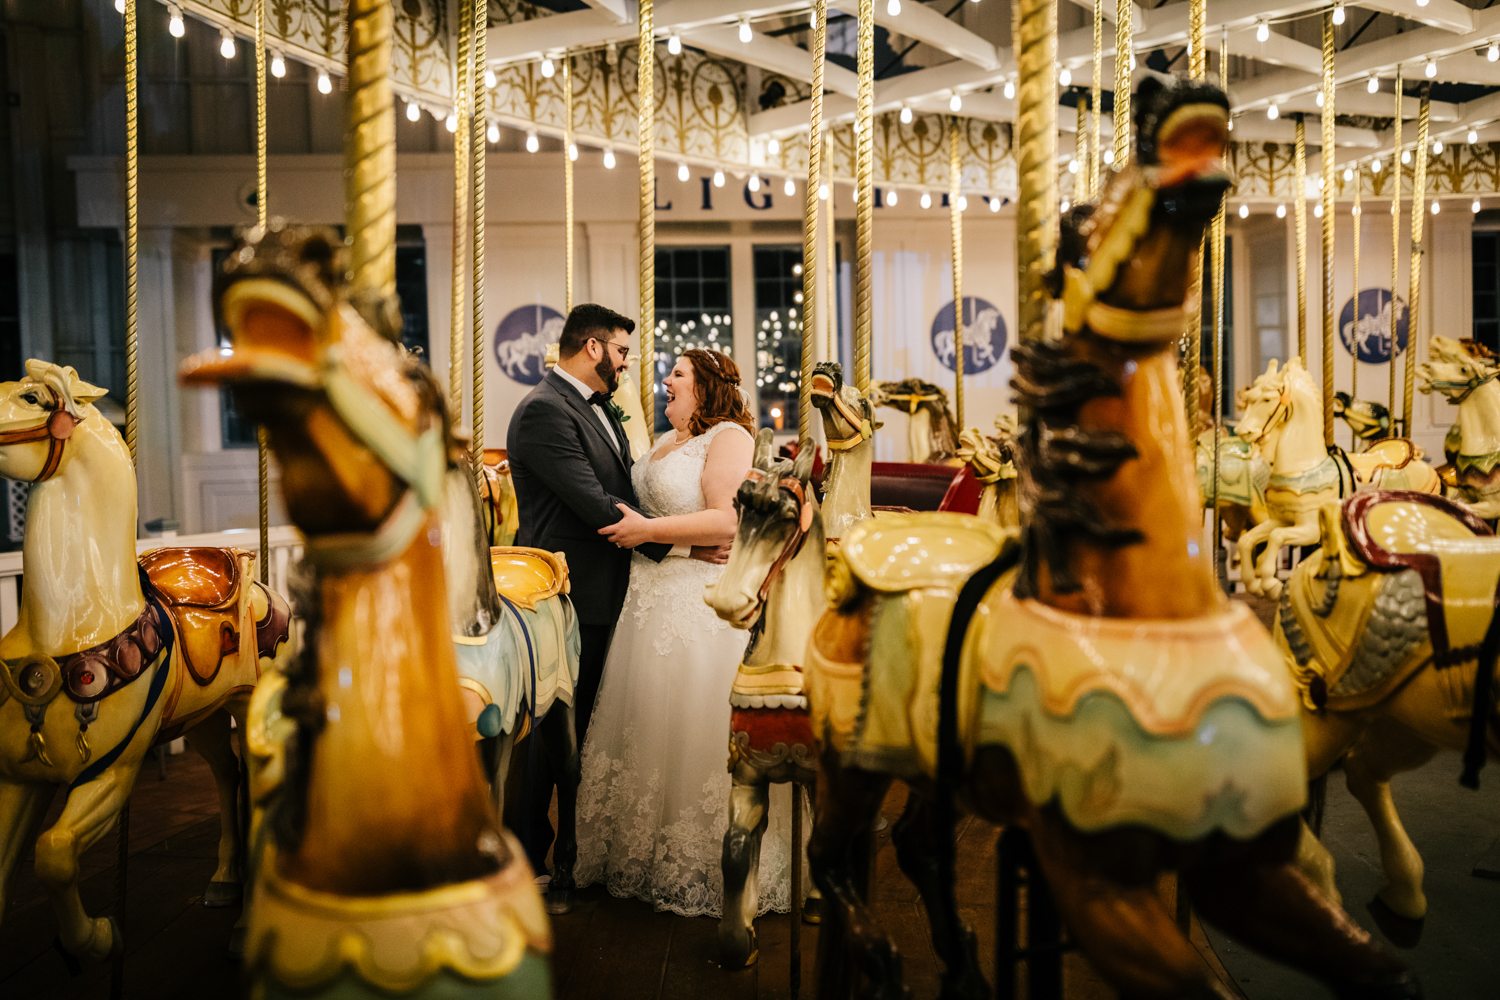 Bride and groom on carousel on wedding day surrounded by merry-go-round horses